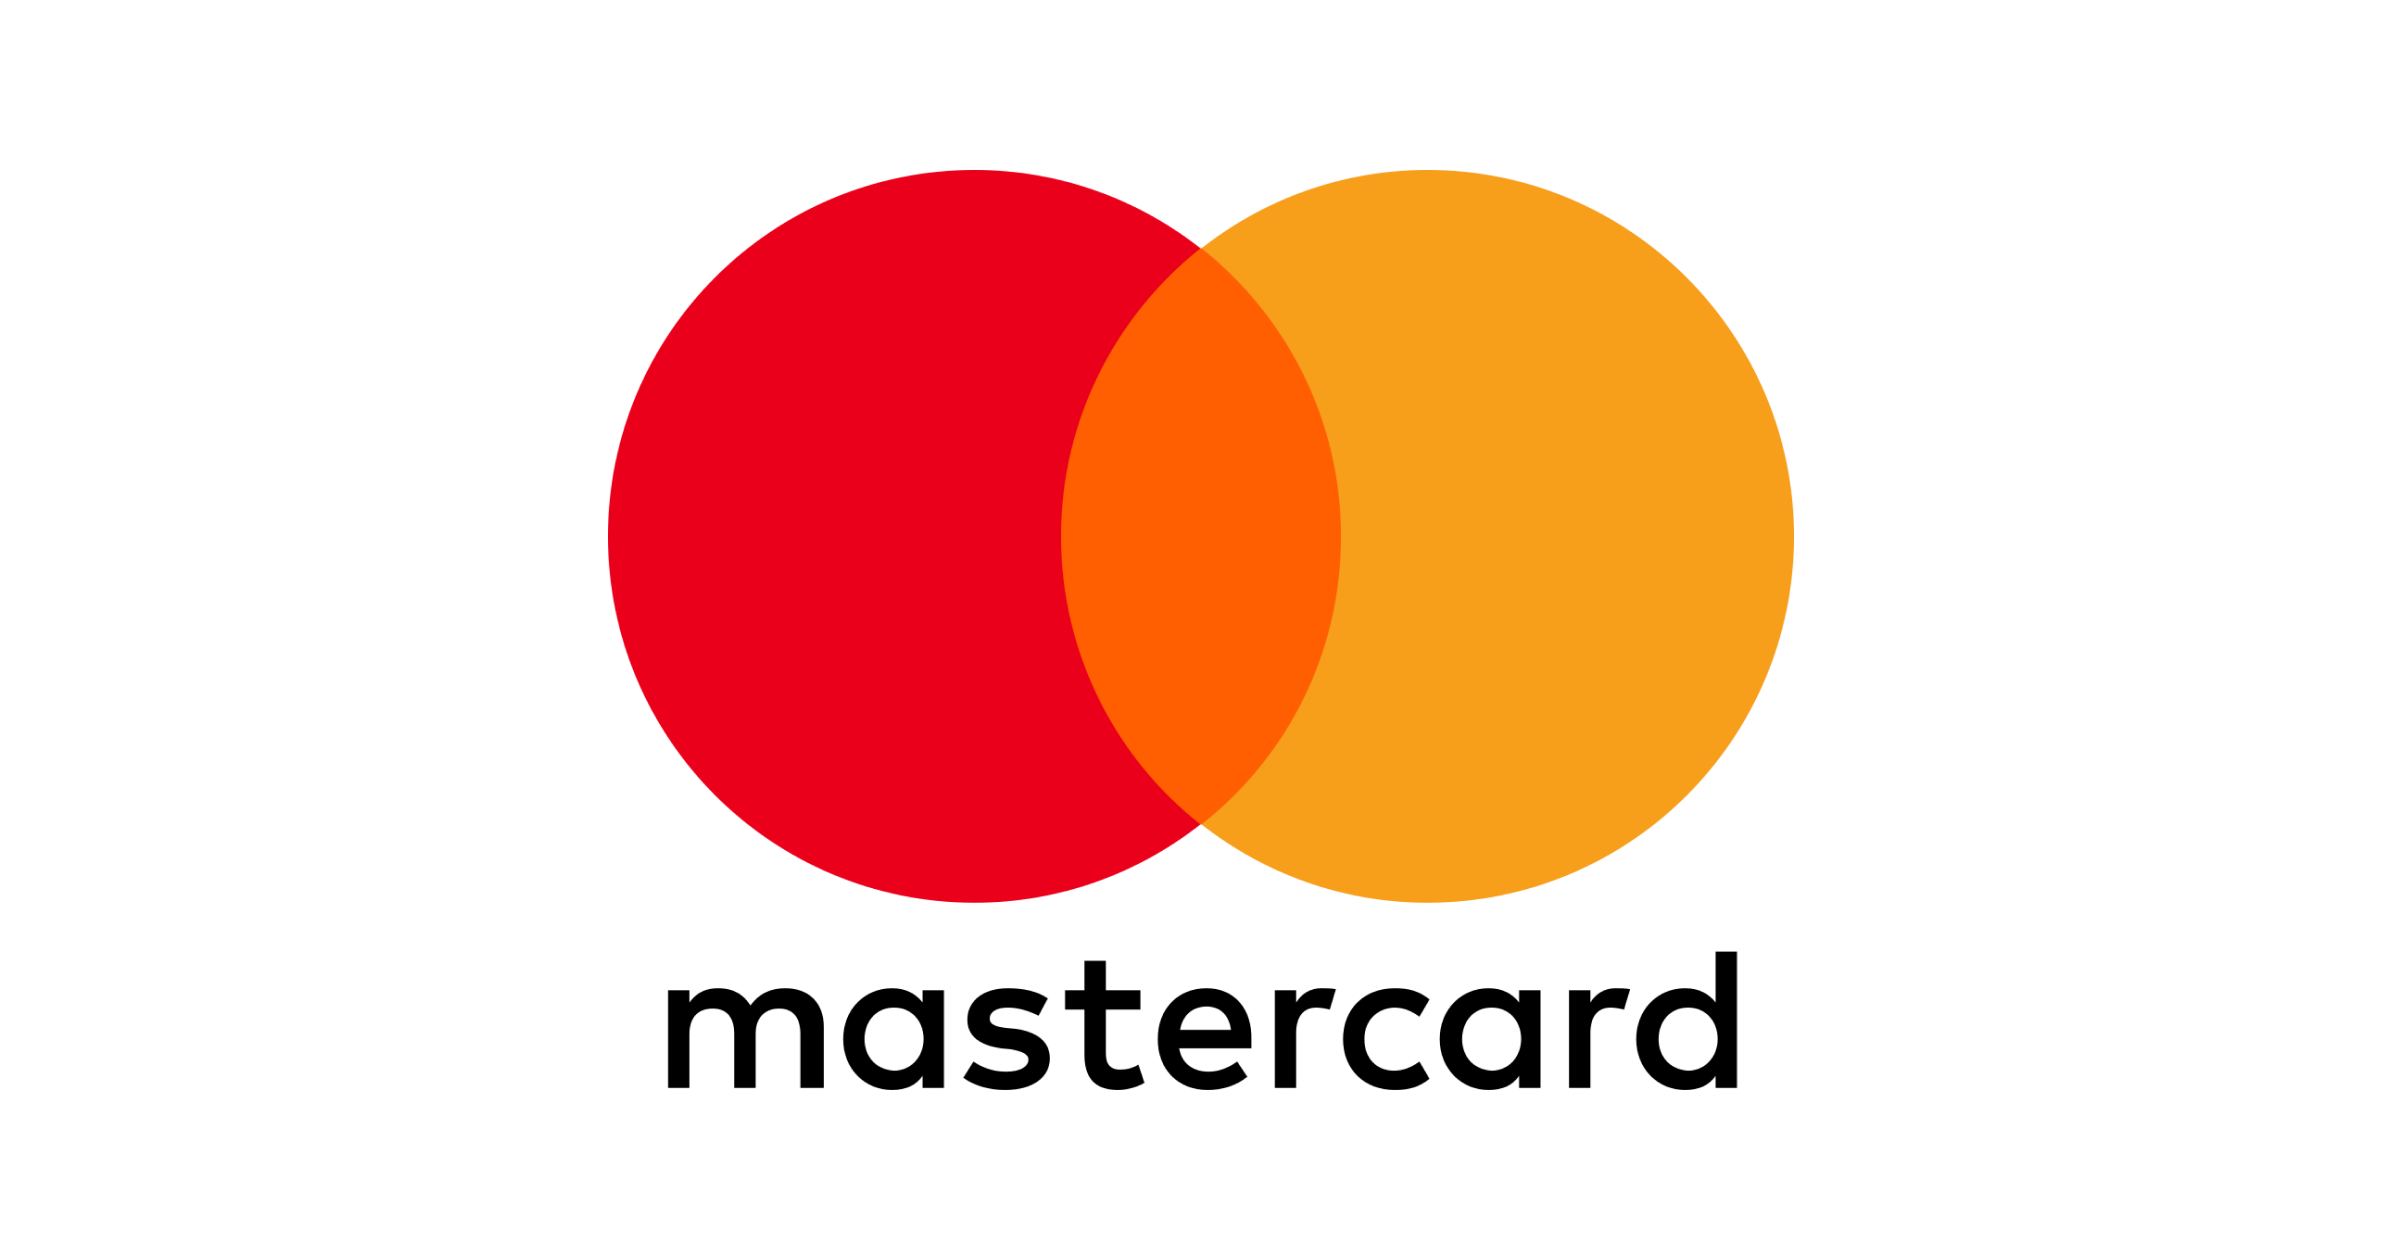 Mastercard has just inked a new contract with our company and made upSWOT business health dashboard available to all their merchants and SMBs at the #Mastercard Business Bonus portal